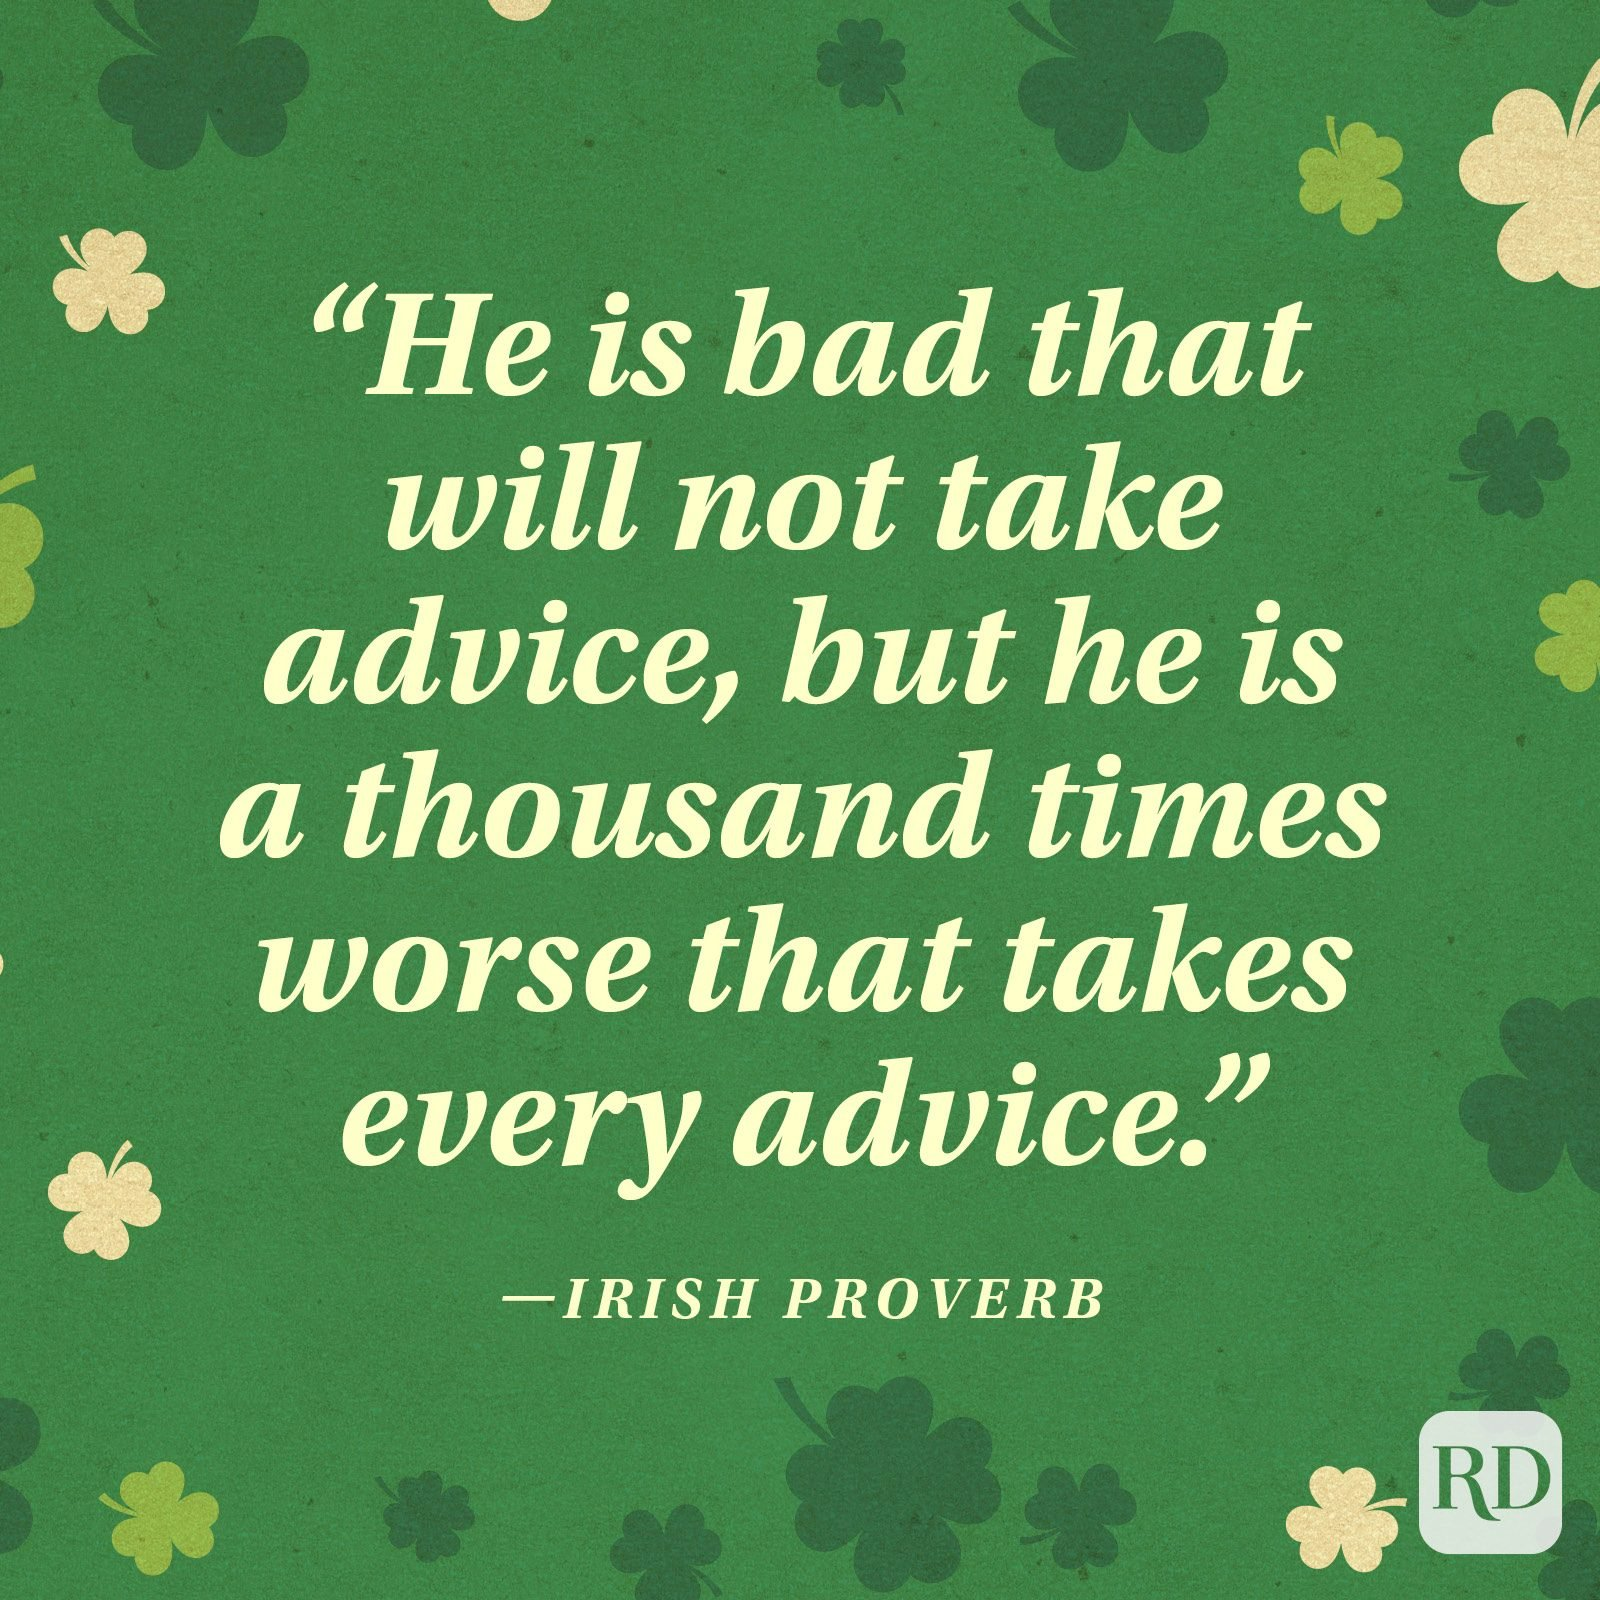 """He is bad that will not take advice, but he is a thousand times worse that takes every advice."" —Irish proverb"